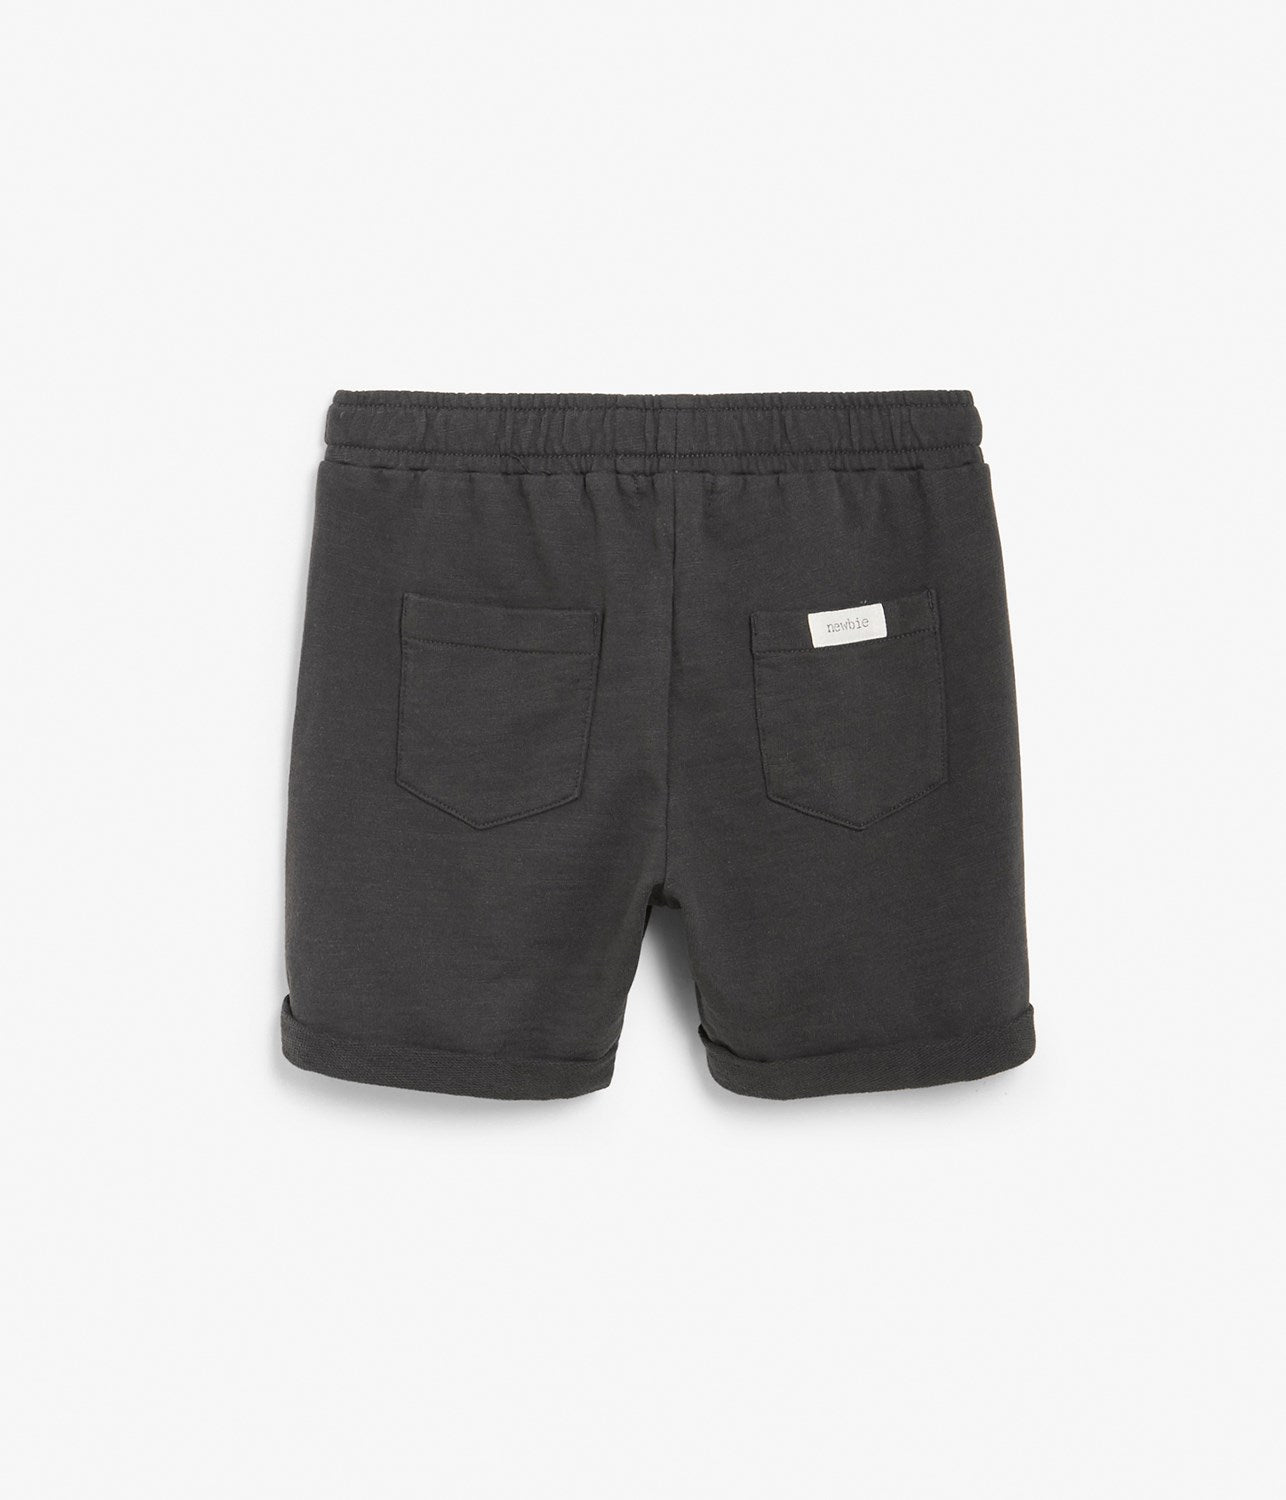 Kids drawstring shorts